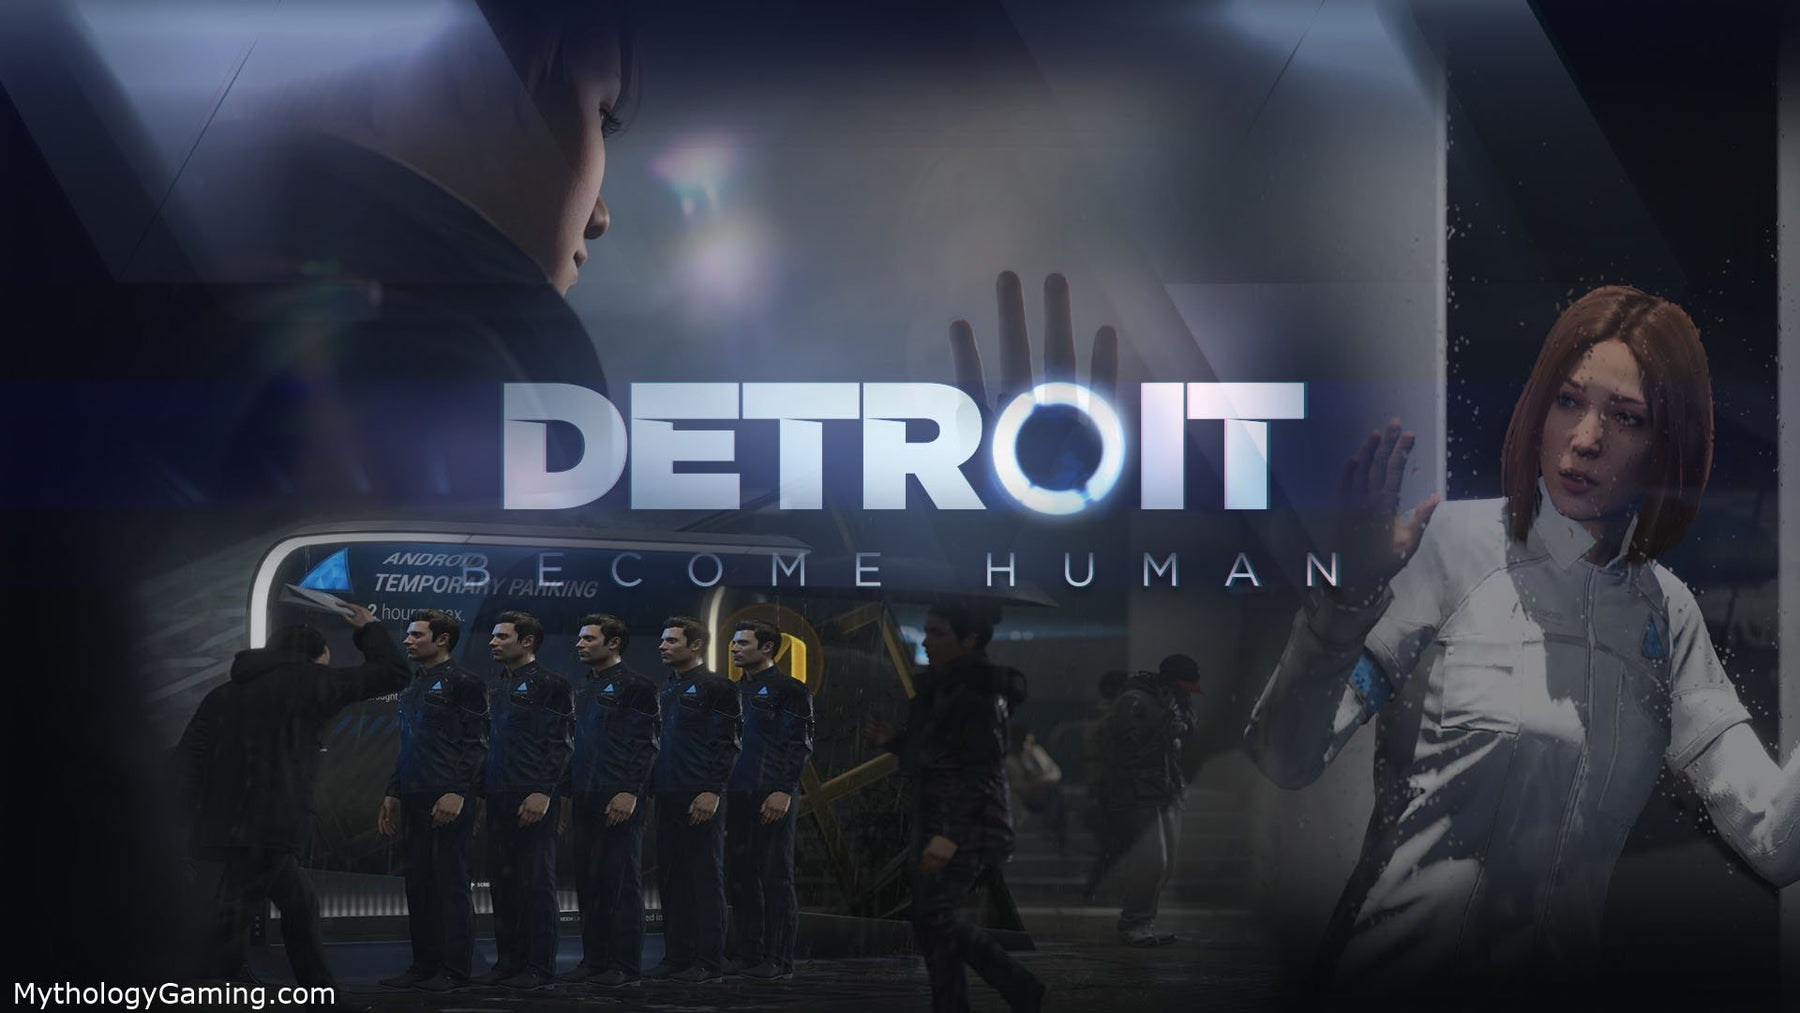 PS4-Exclusive Detroit: Become Human Release Date Announced